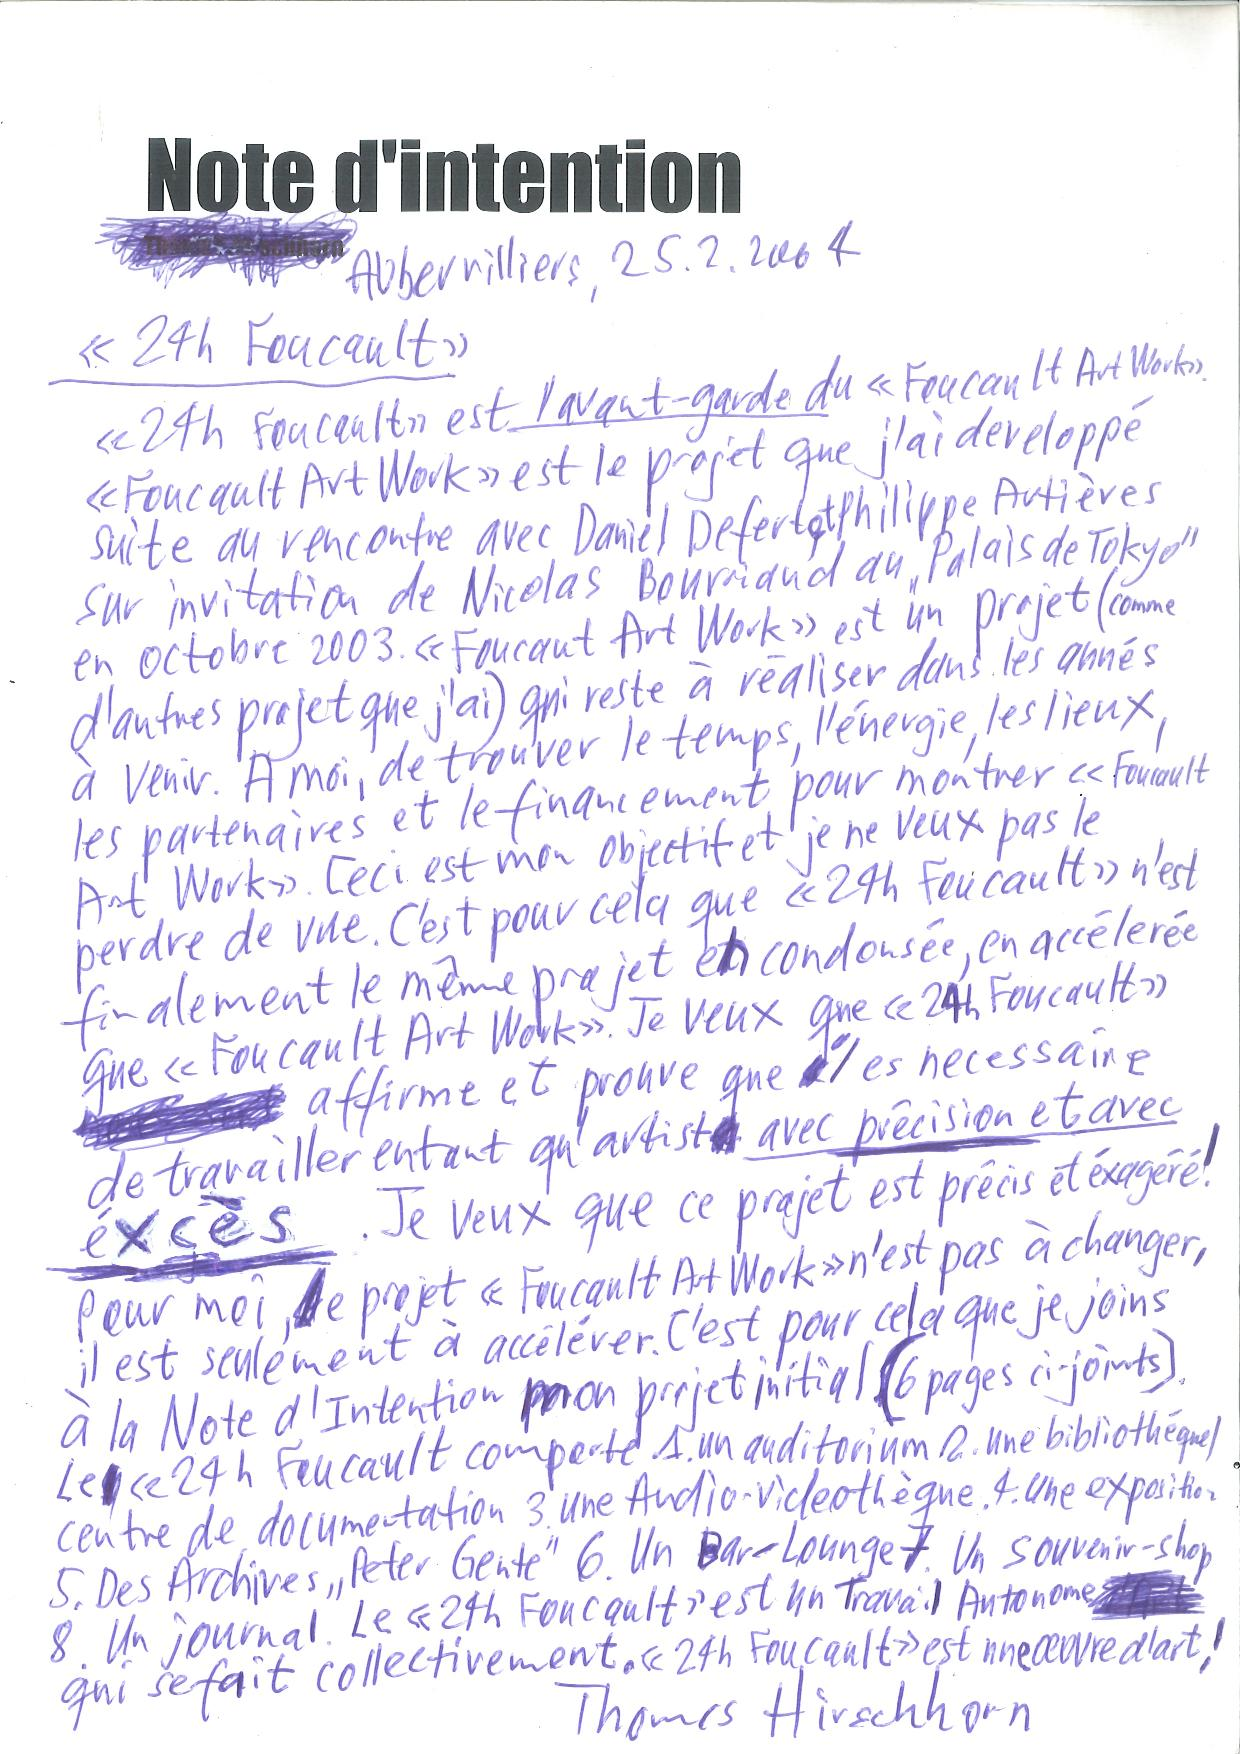 24H-Foucault_Note d'intention_2004 (1)